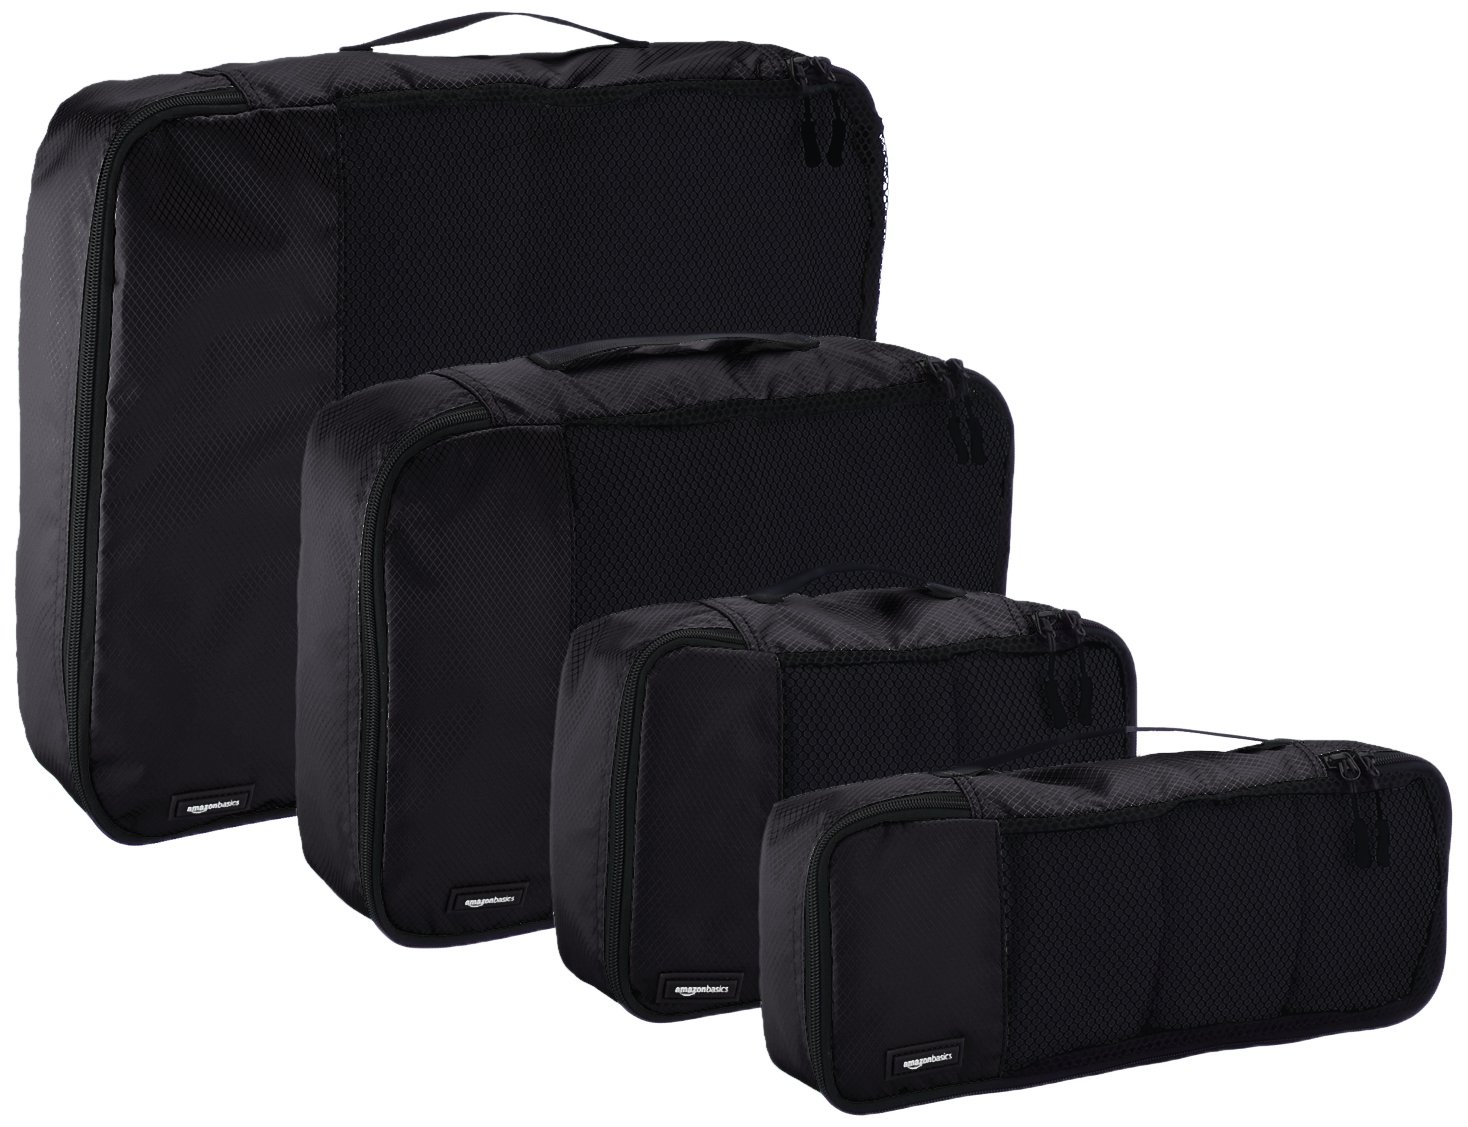 AmazonBasics 4-Piece Packing Cube Set - Small, Medium, Large, and Slim, Black by AmazonBasics (Image #4)